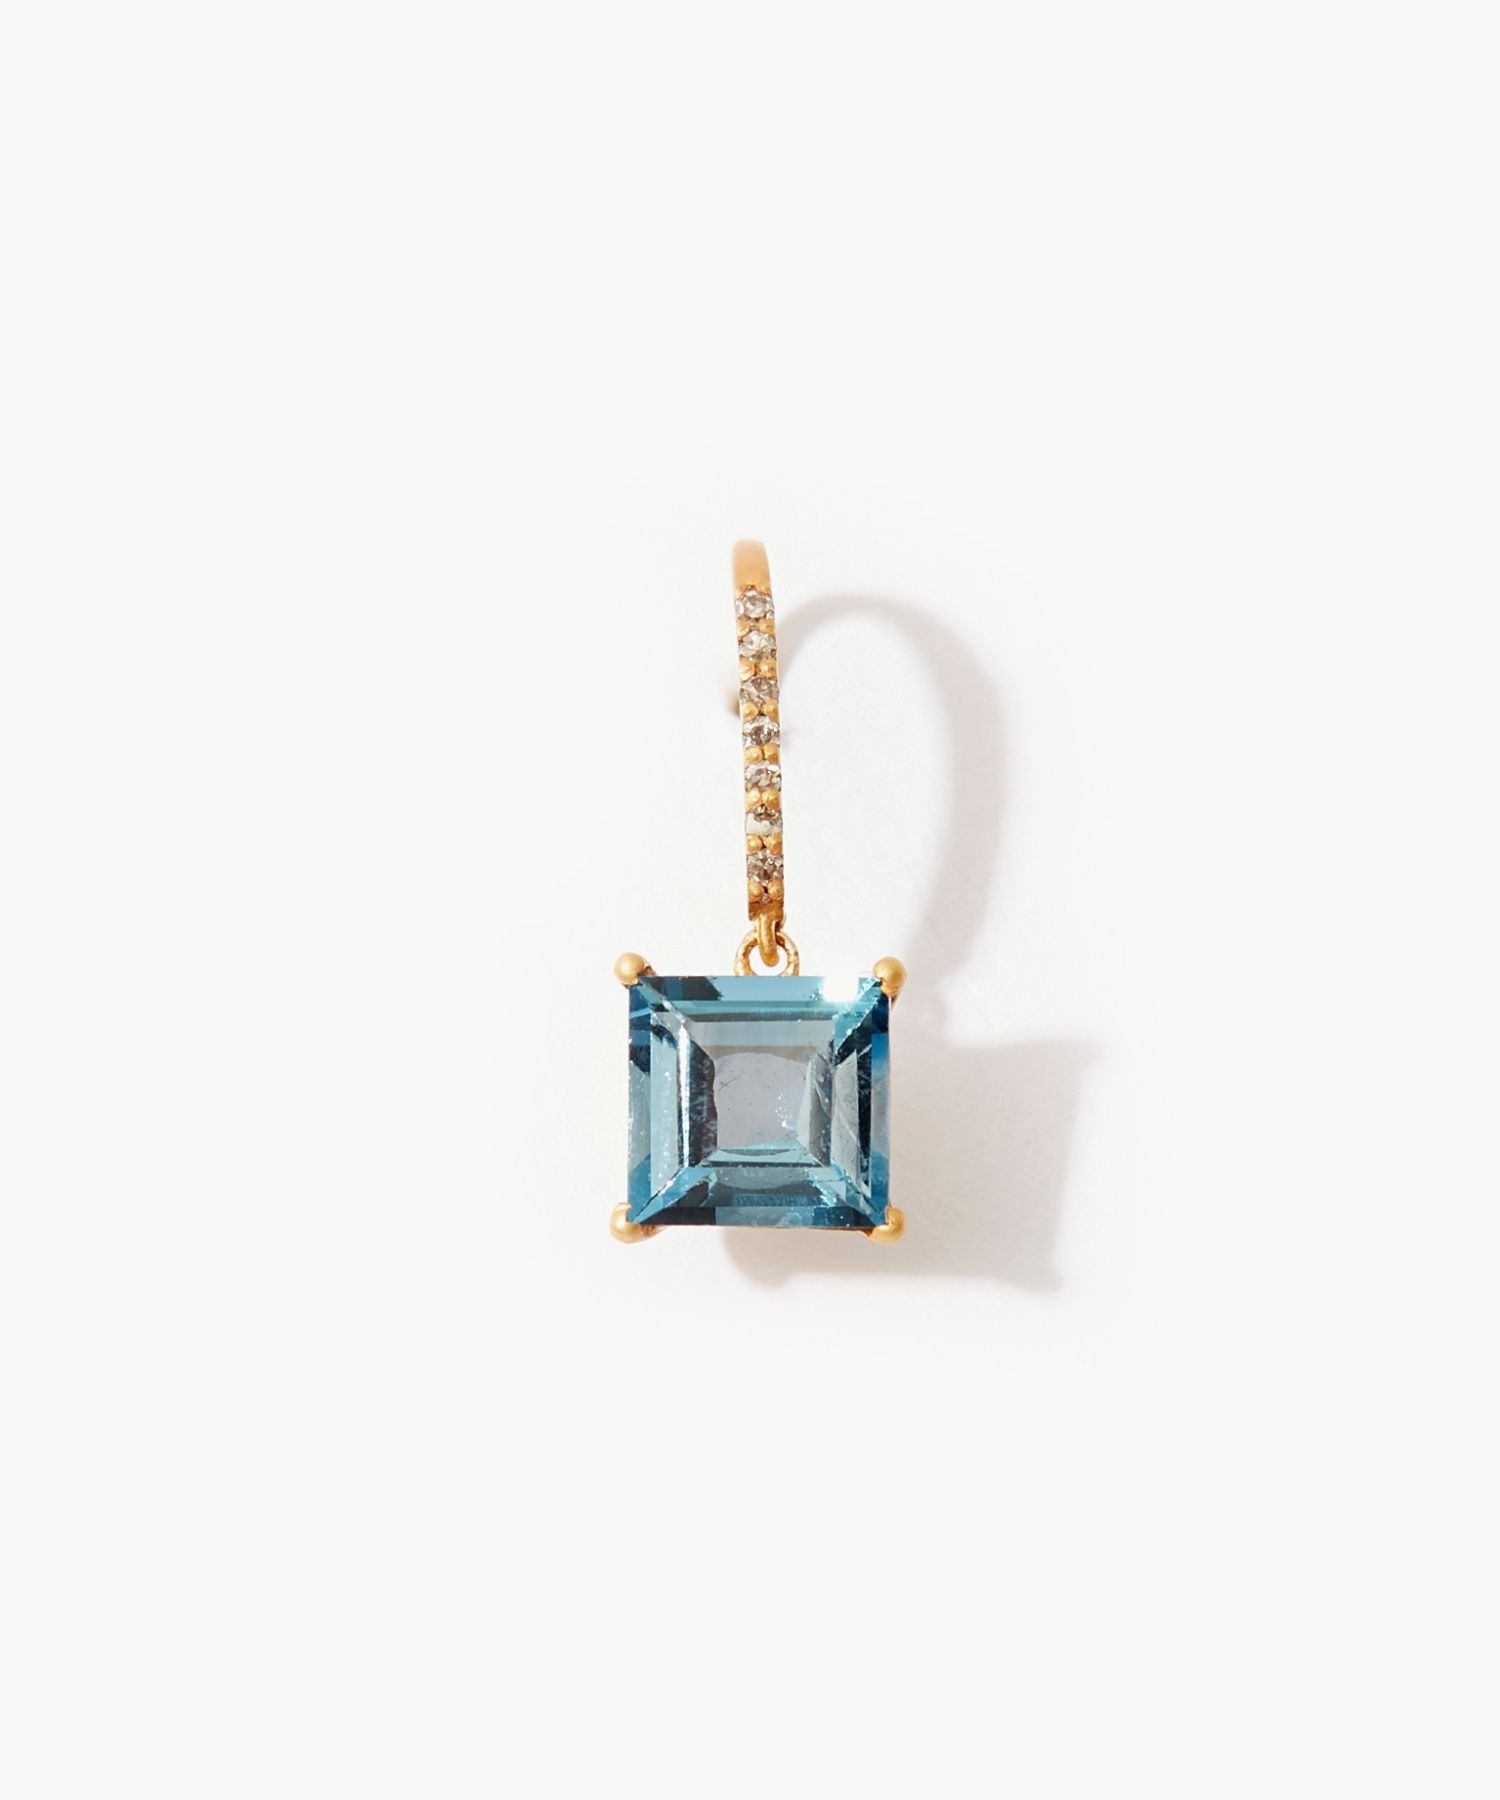 [eden] K10 square london blue topaz pave diamond pierced earring